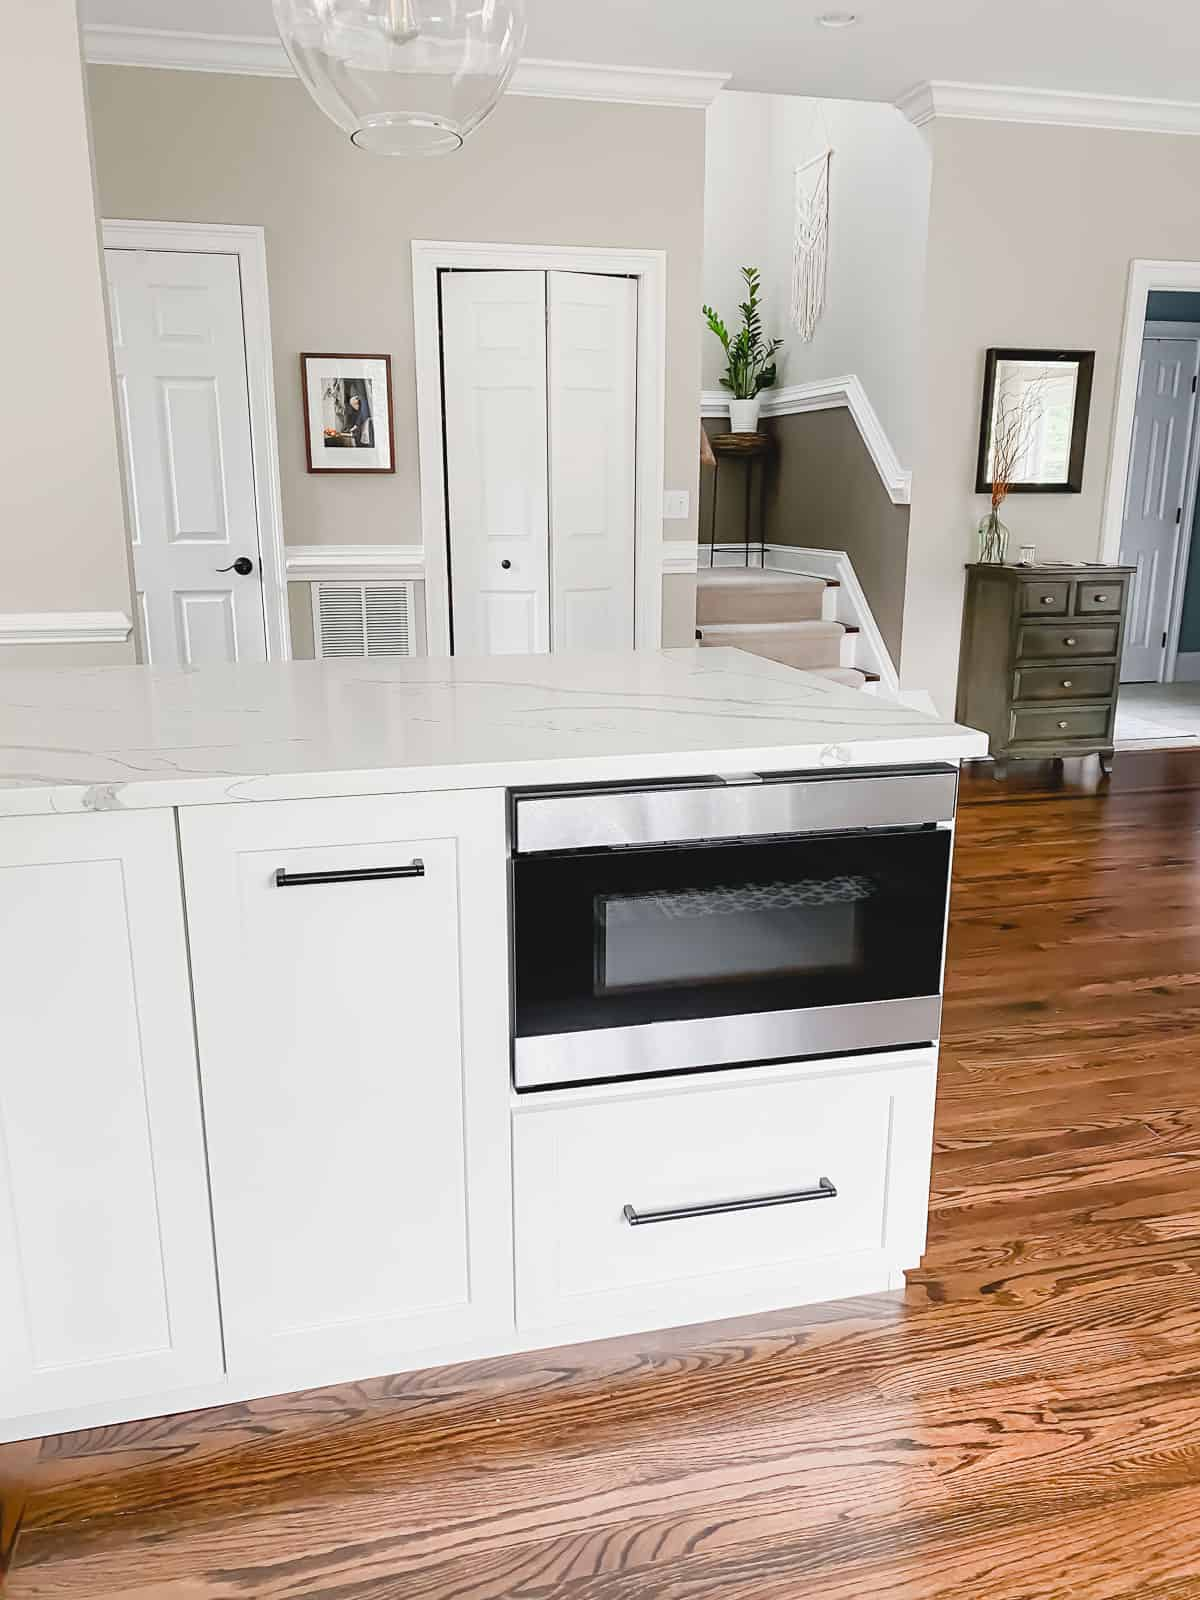 Sharp stainless steel drawer microwave with wave technology